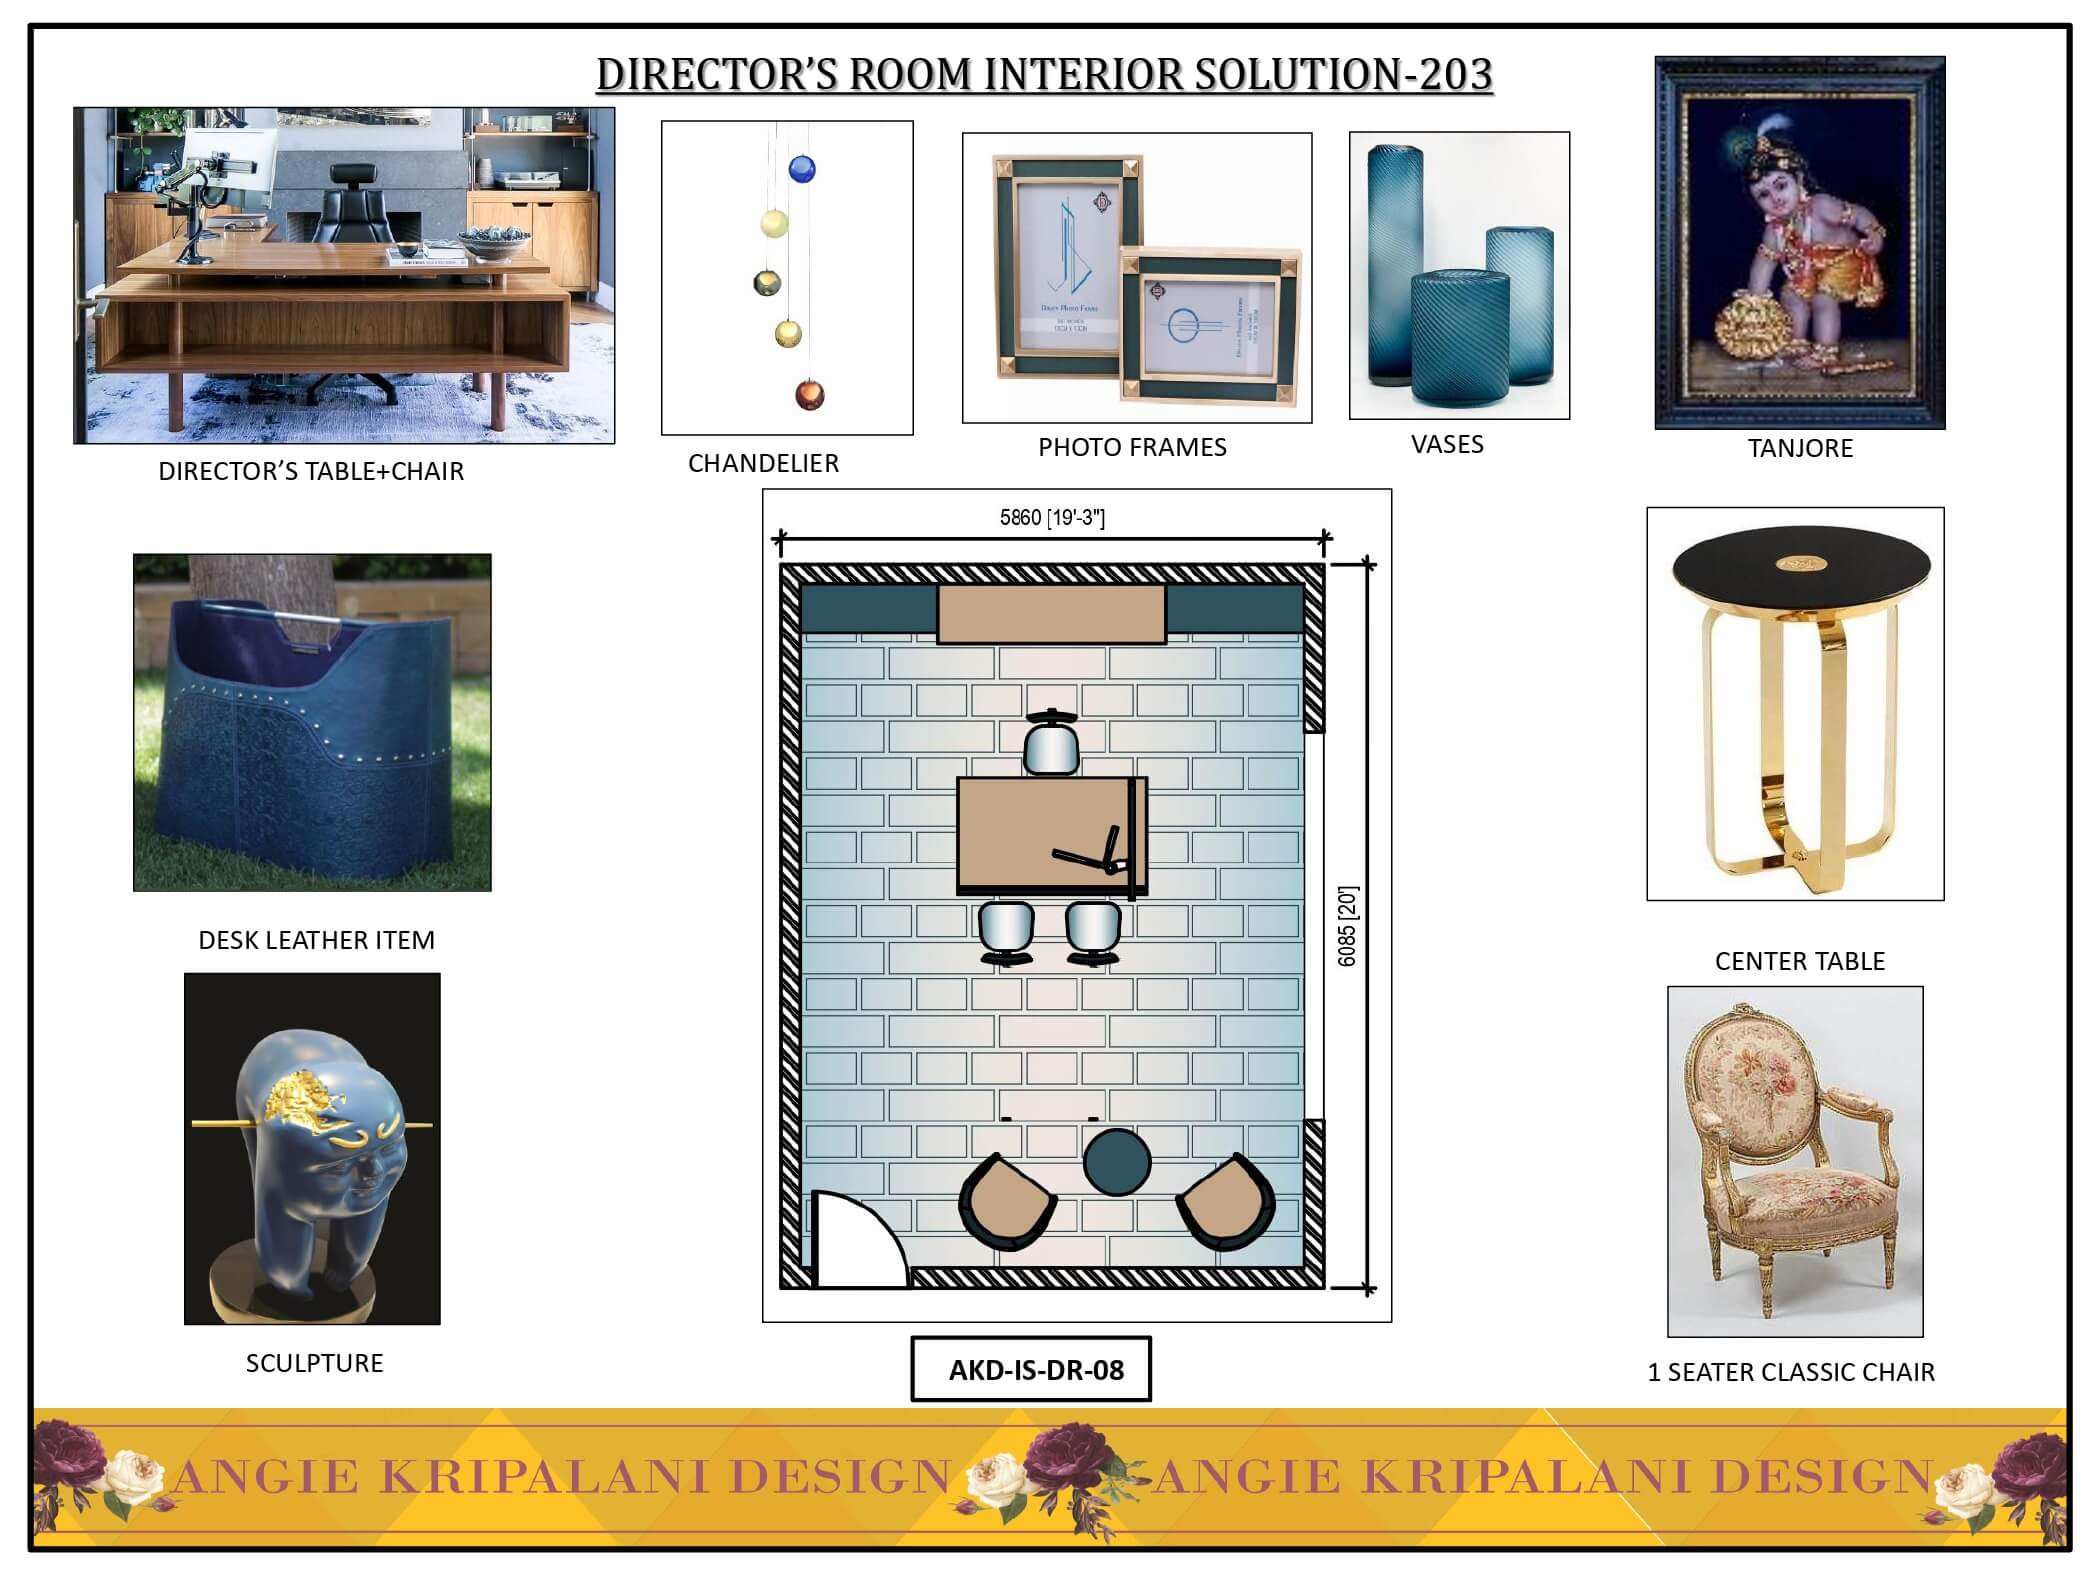 DIRECTOR'S ROOM INTERIOR SOLUTION-203